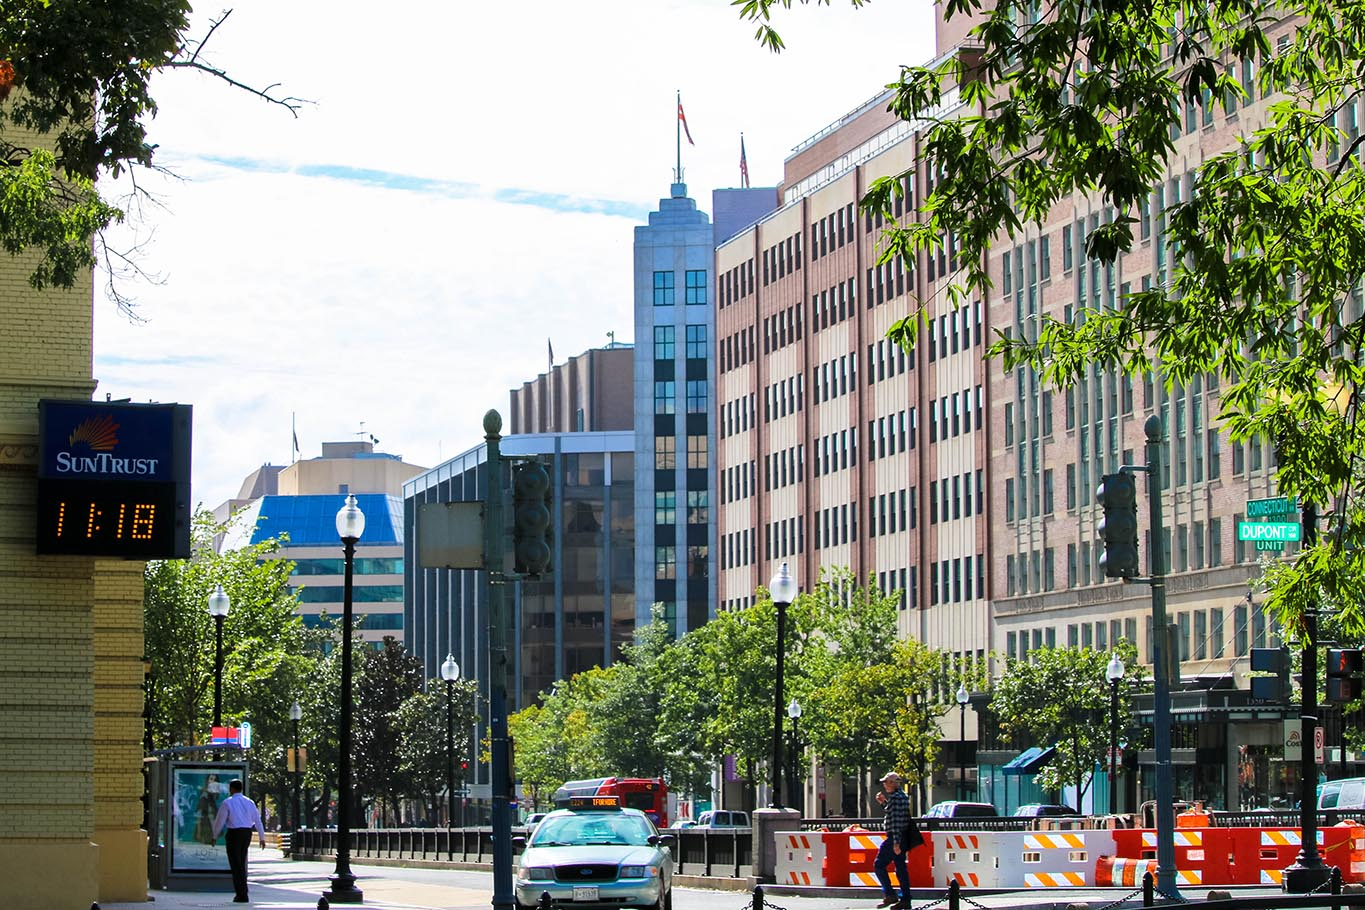 Connecticut avenue in Dupont Circle, Washington, D.C.